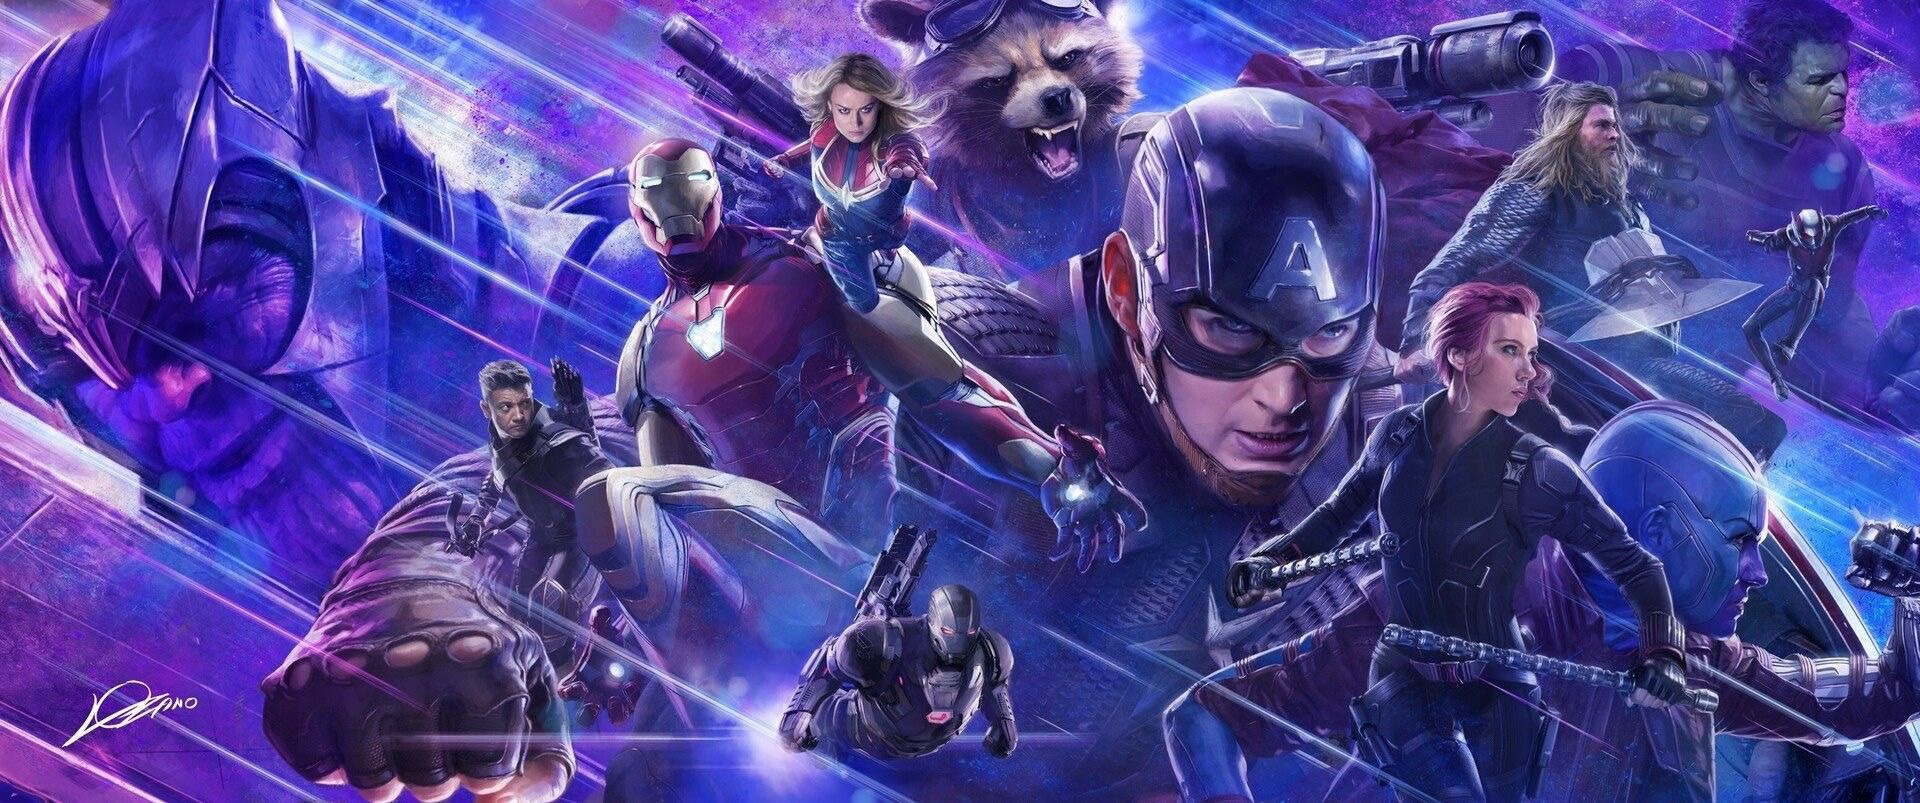 Avengers Endgame Back In Theaters Next Week With Additional Content